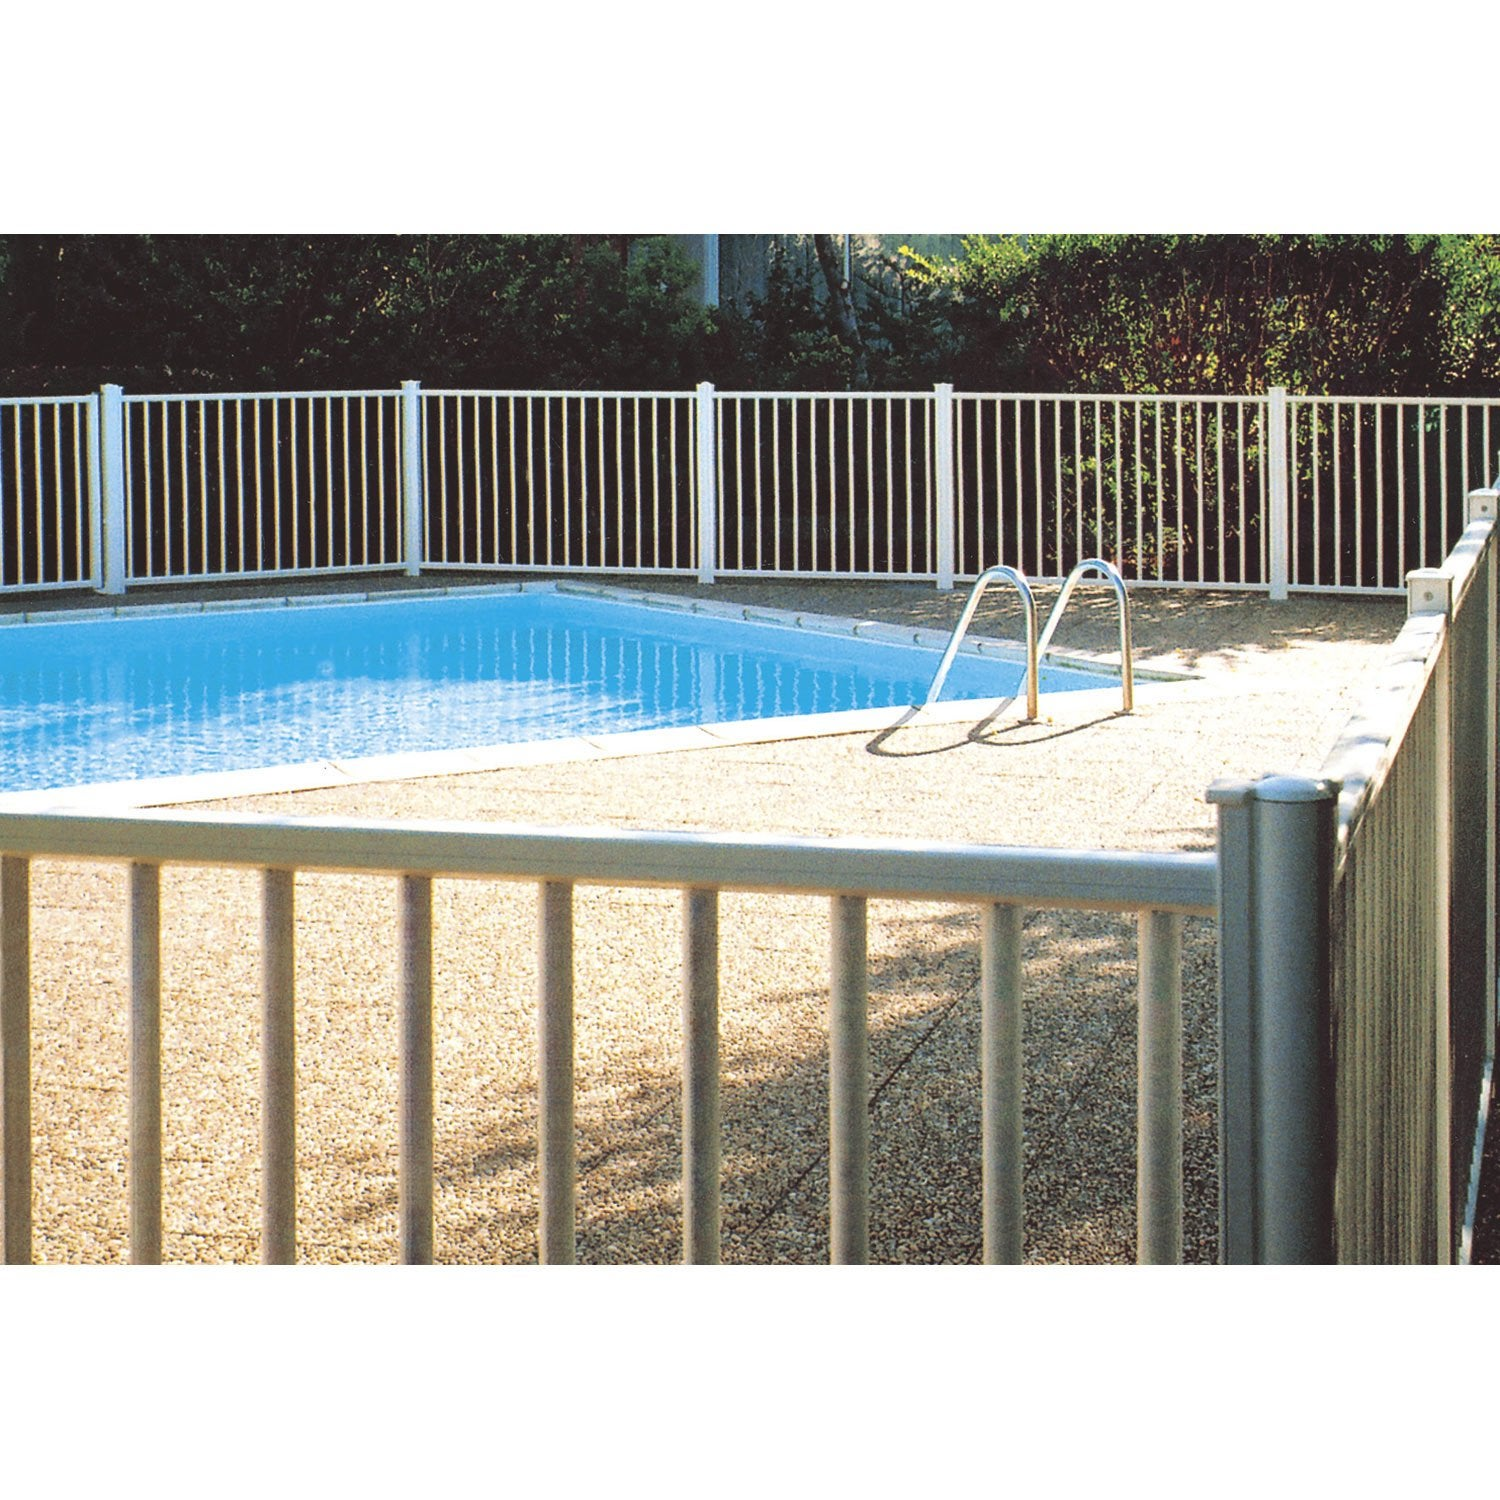 Barri re pour piscine aluminium issambres blanc 9010 h for Barriere piscine